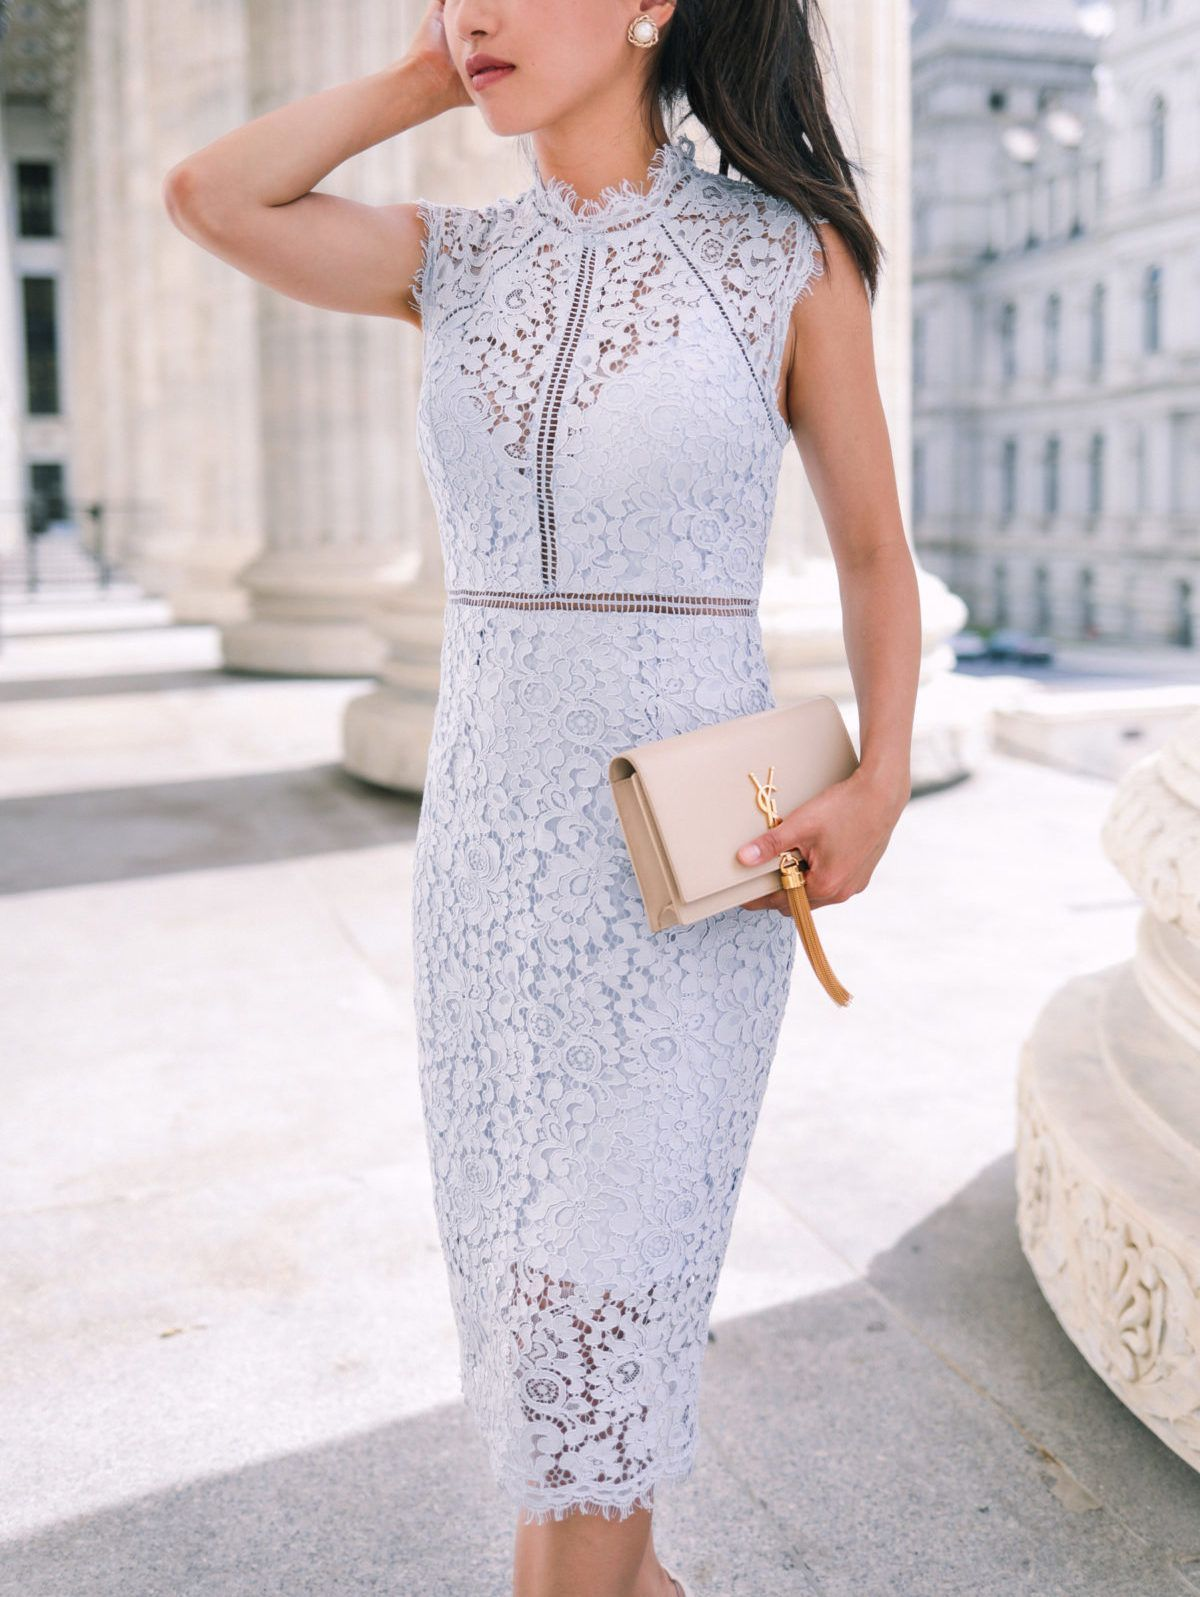 Ysl Kate Purse Nordstrom Lace Dress Petites Pursesnordstrom Lace Dress Lace Dress Design Petite Wedding Guest Outfits [ 1597 x 1200 Pixel ]